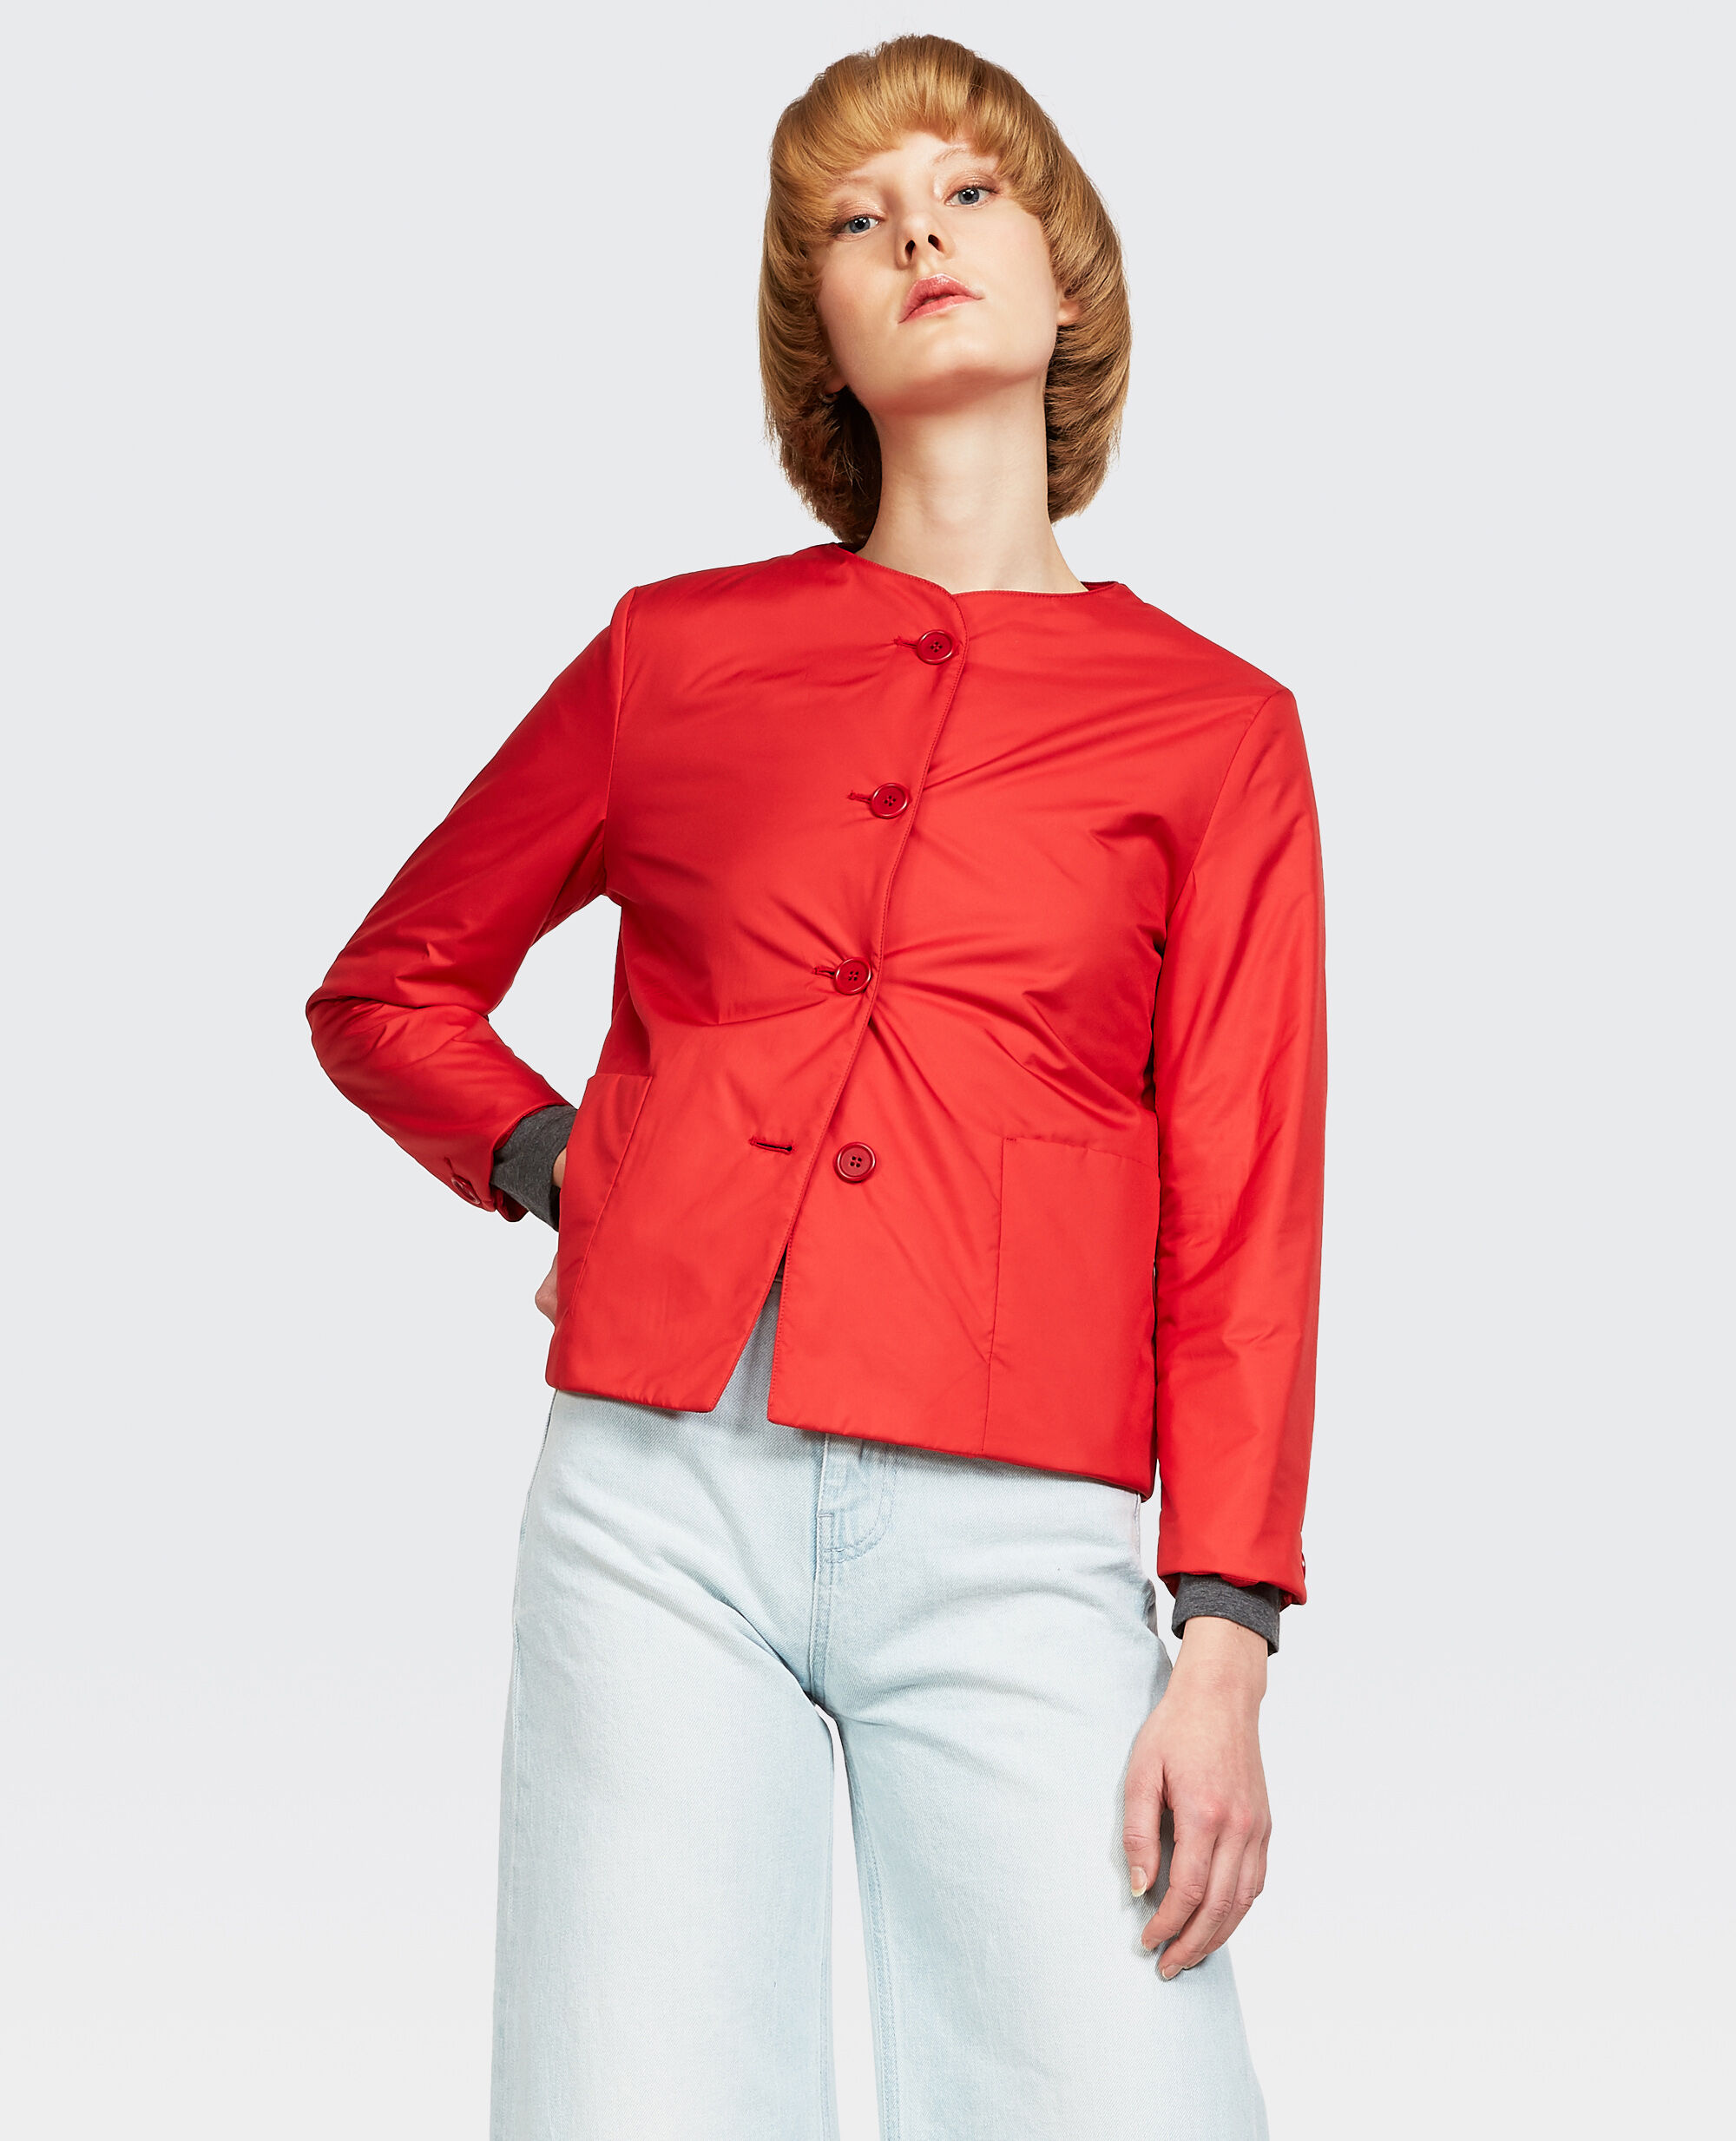 Obsessory Shop Jackets For Women QCtsxBhrdo